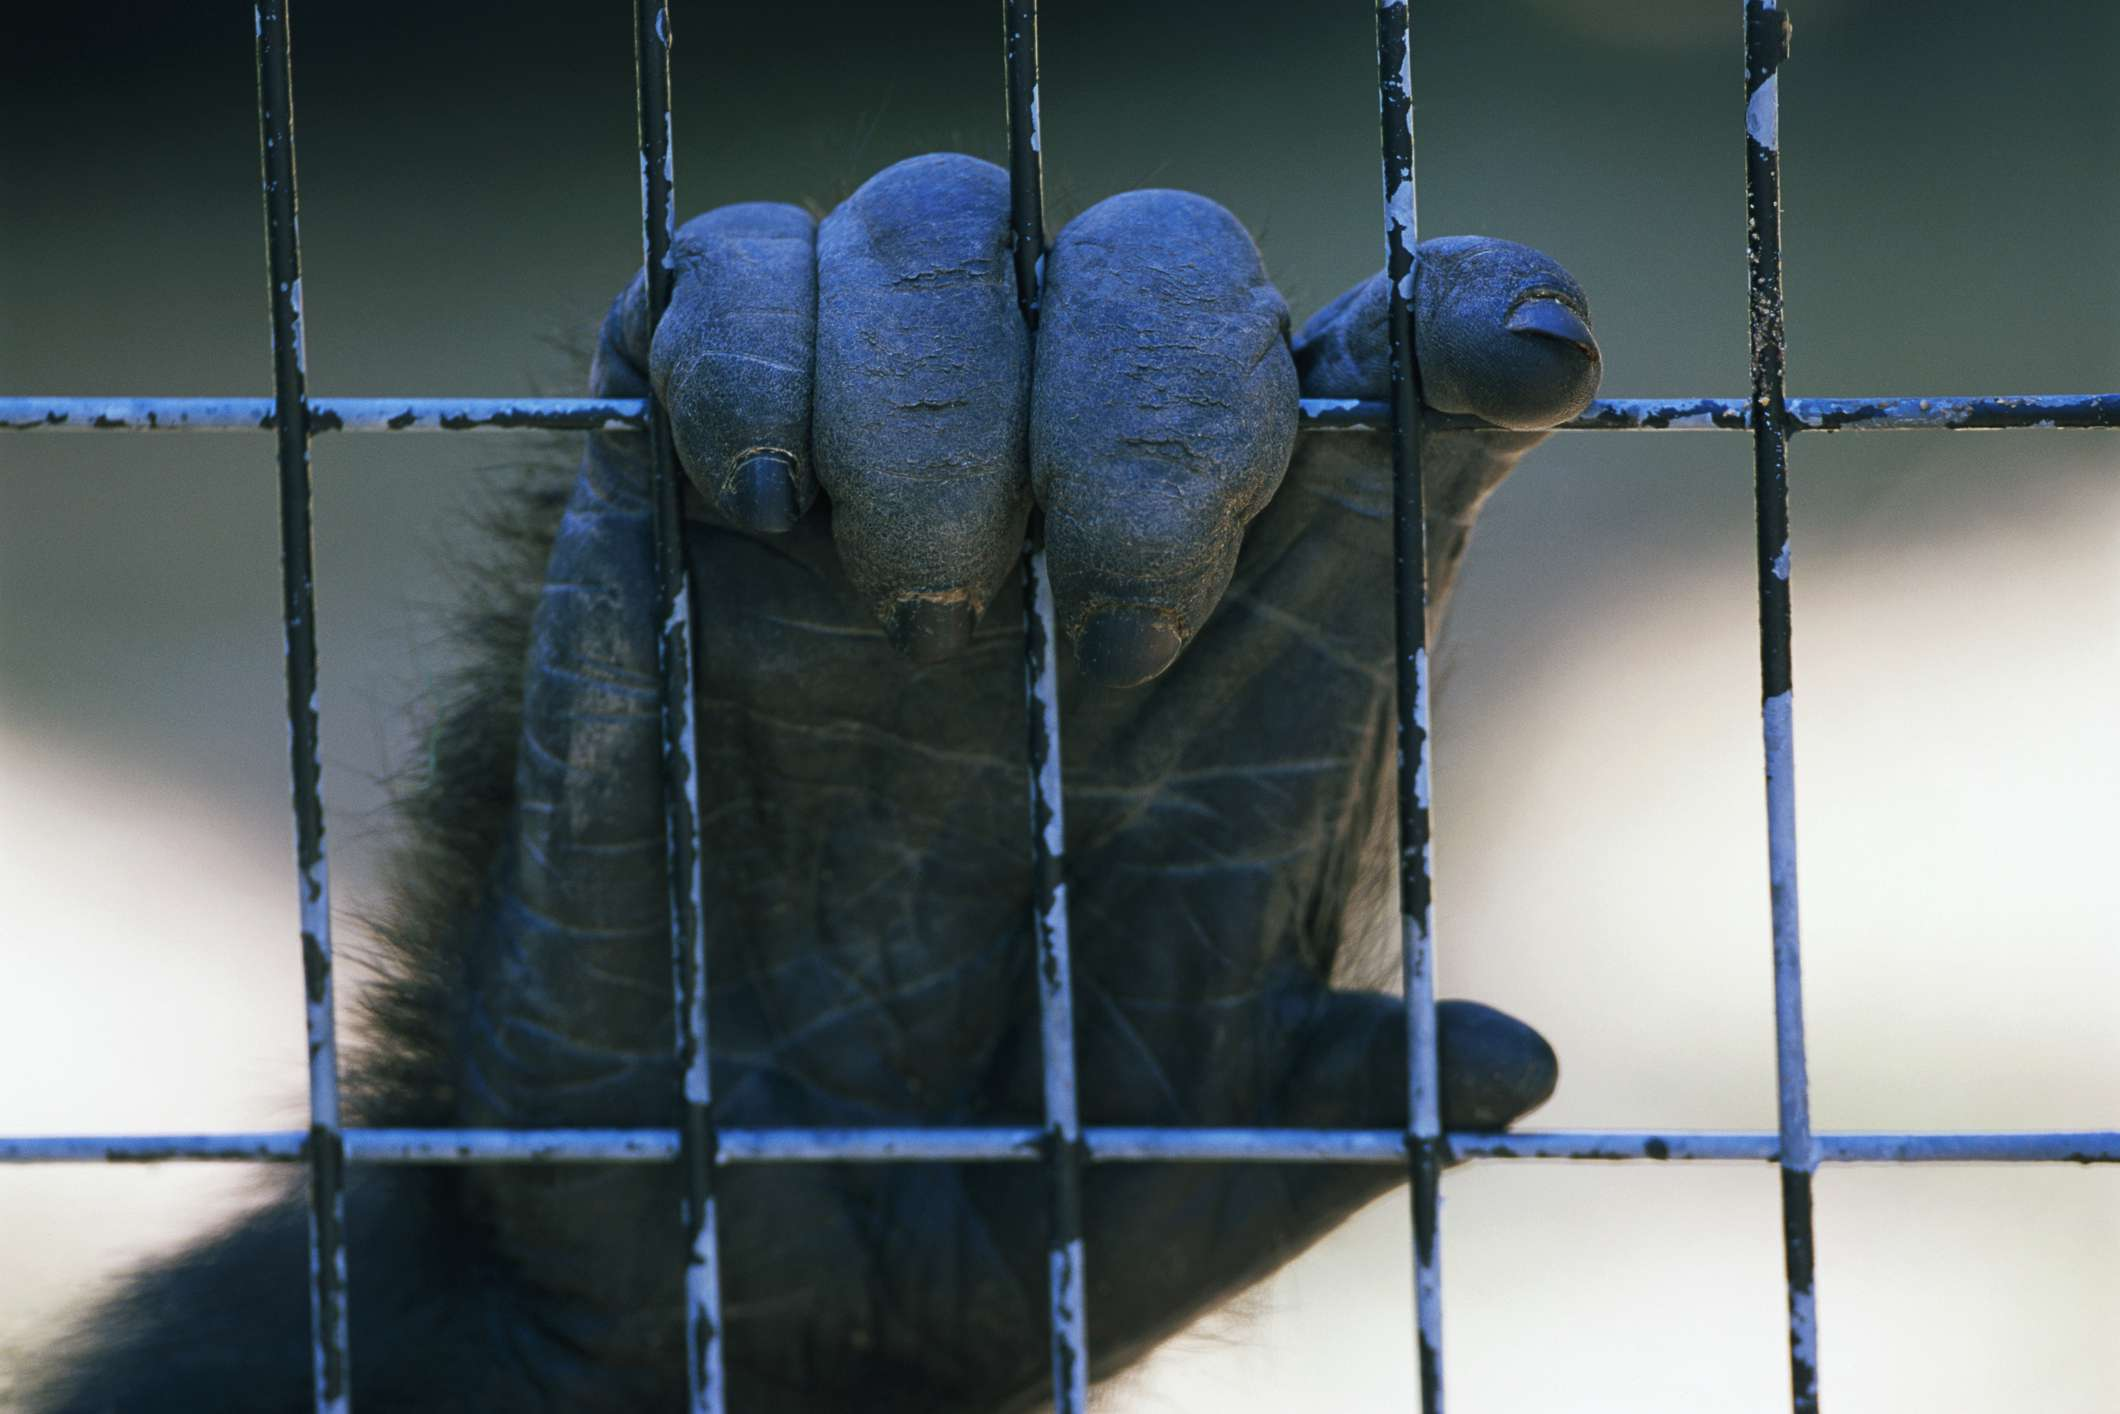 A gorilla hand holds onto a cage.